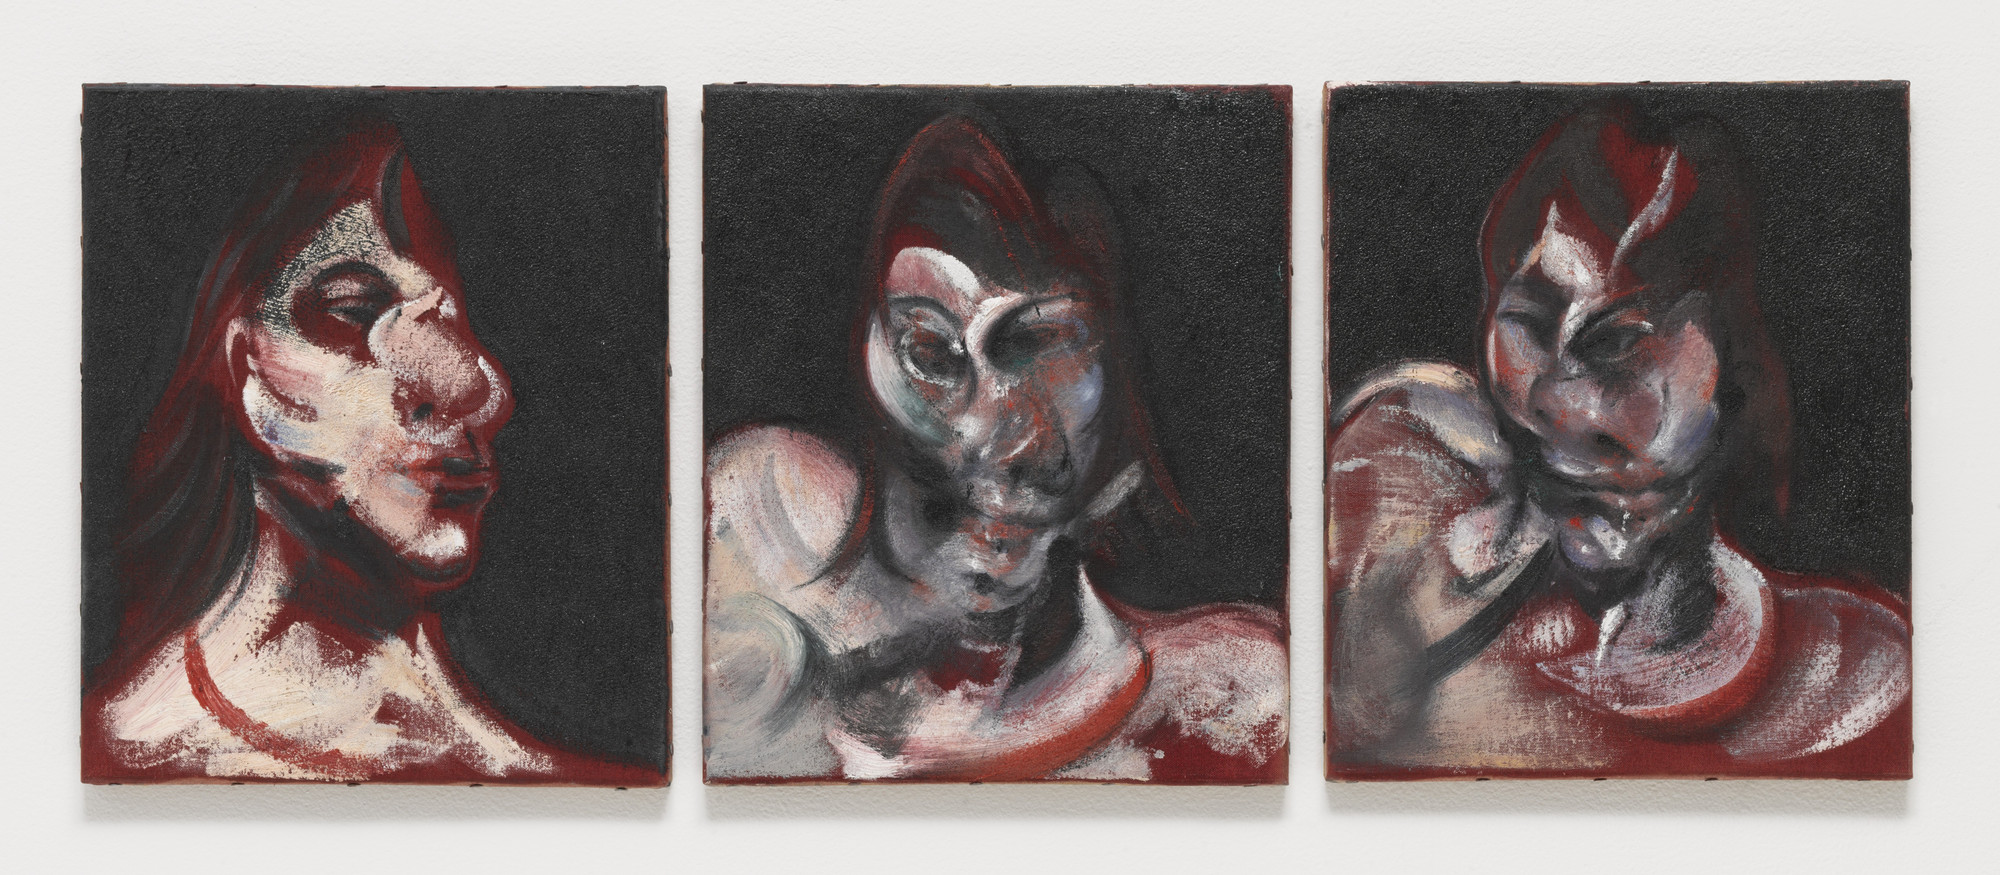 Francis Bacon. Three Studies for the Portrait of Henrietta Moraes. 1963